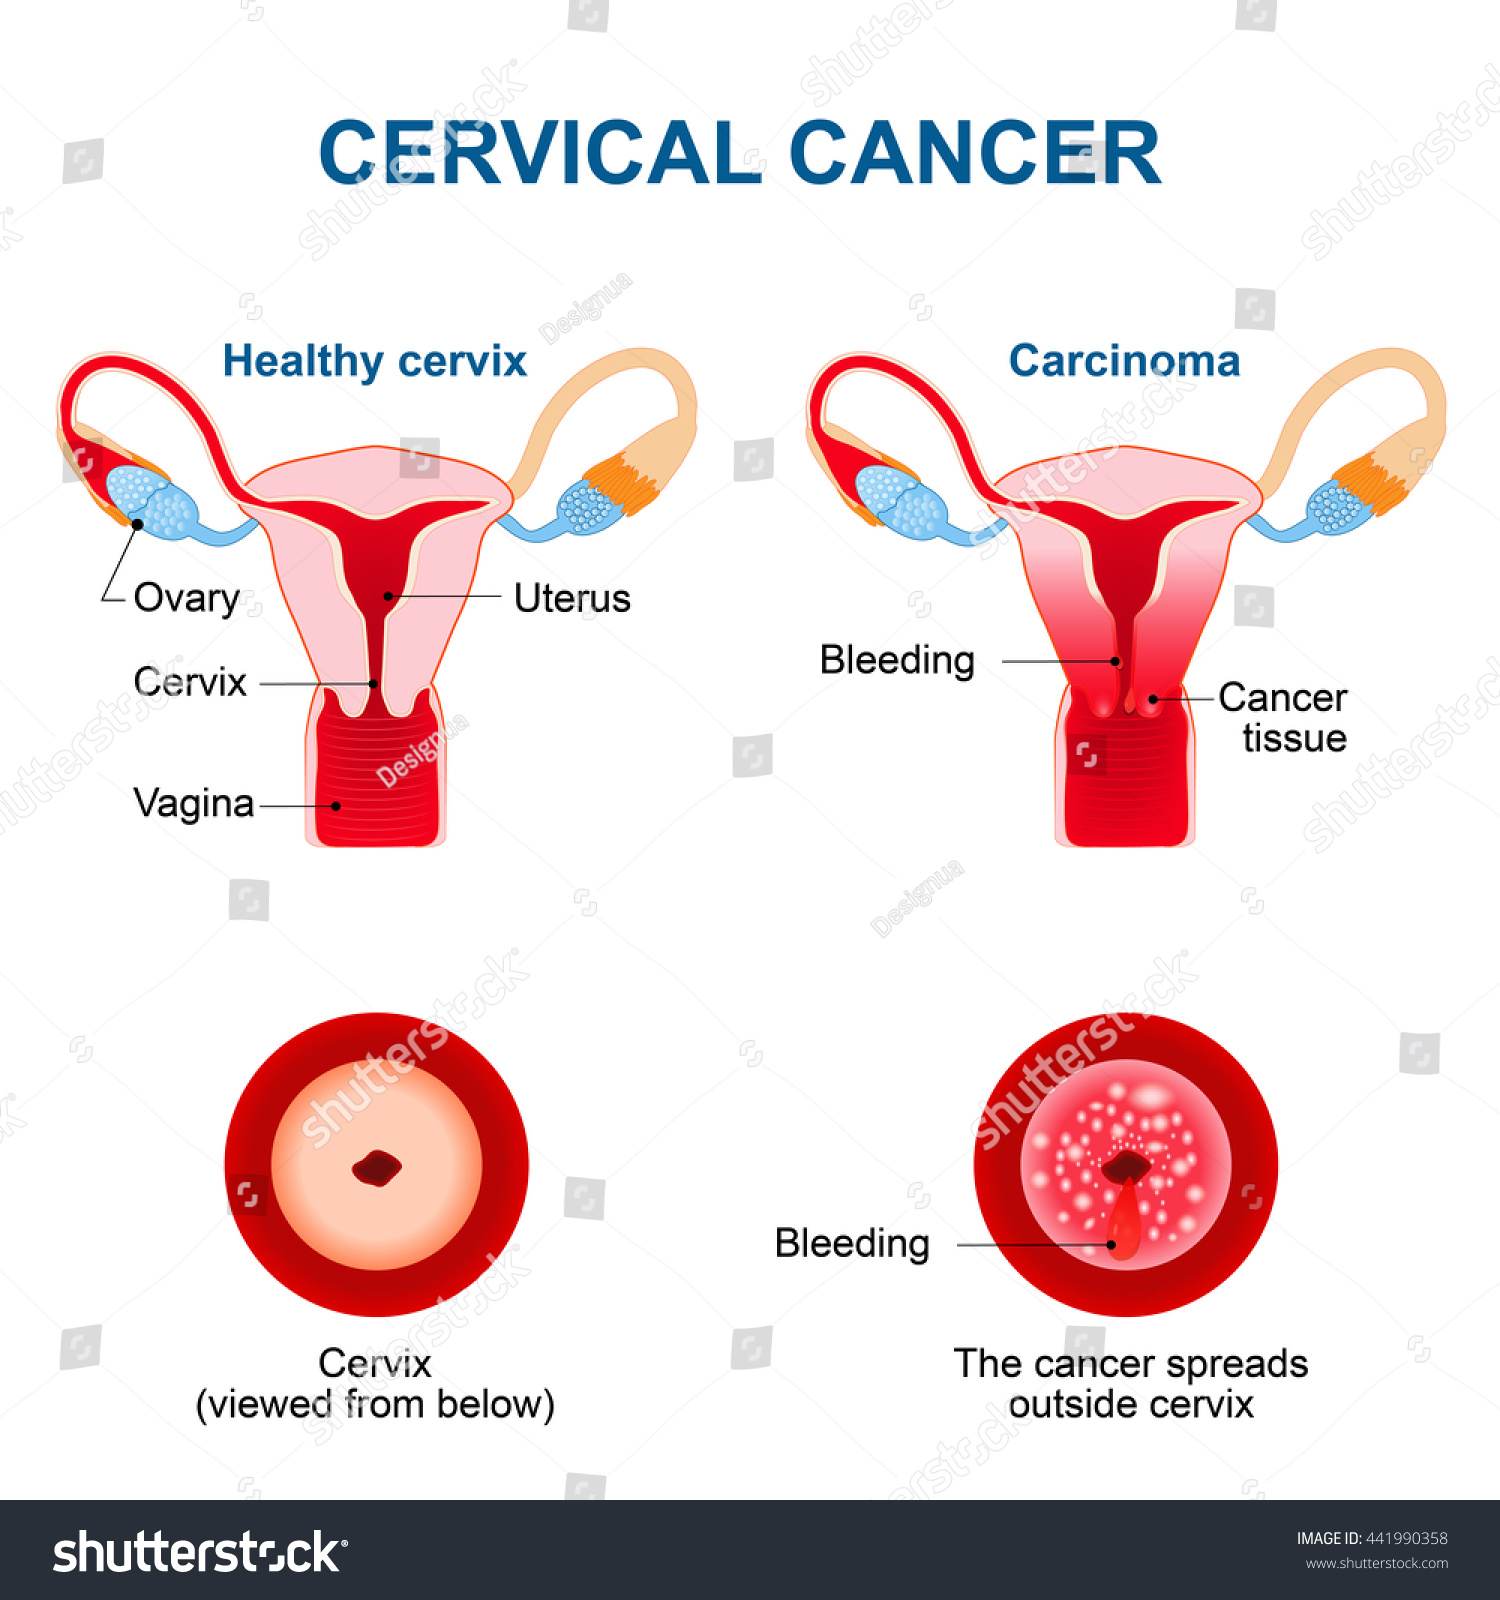 Cervical Cancer. Malignant Neoplasm Arising From Cells In The Cervix Uteri. Vaginal Bleeding. Stock Photo 441990358 : Shutterstock